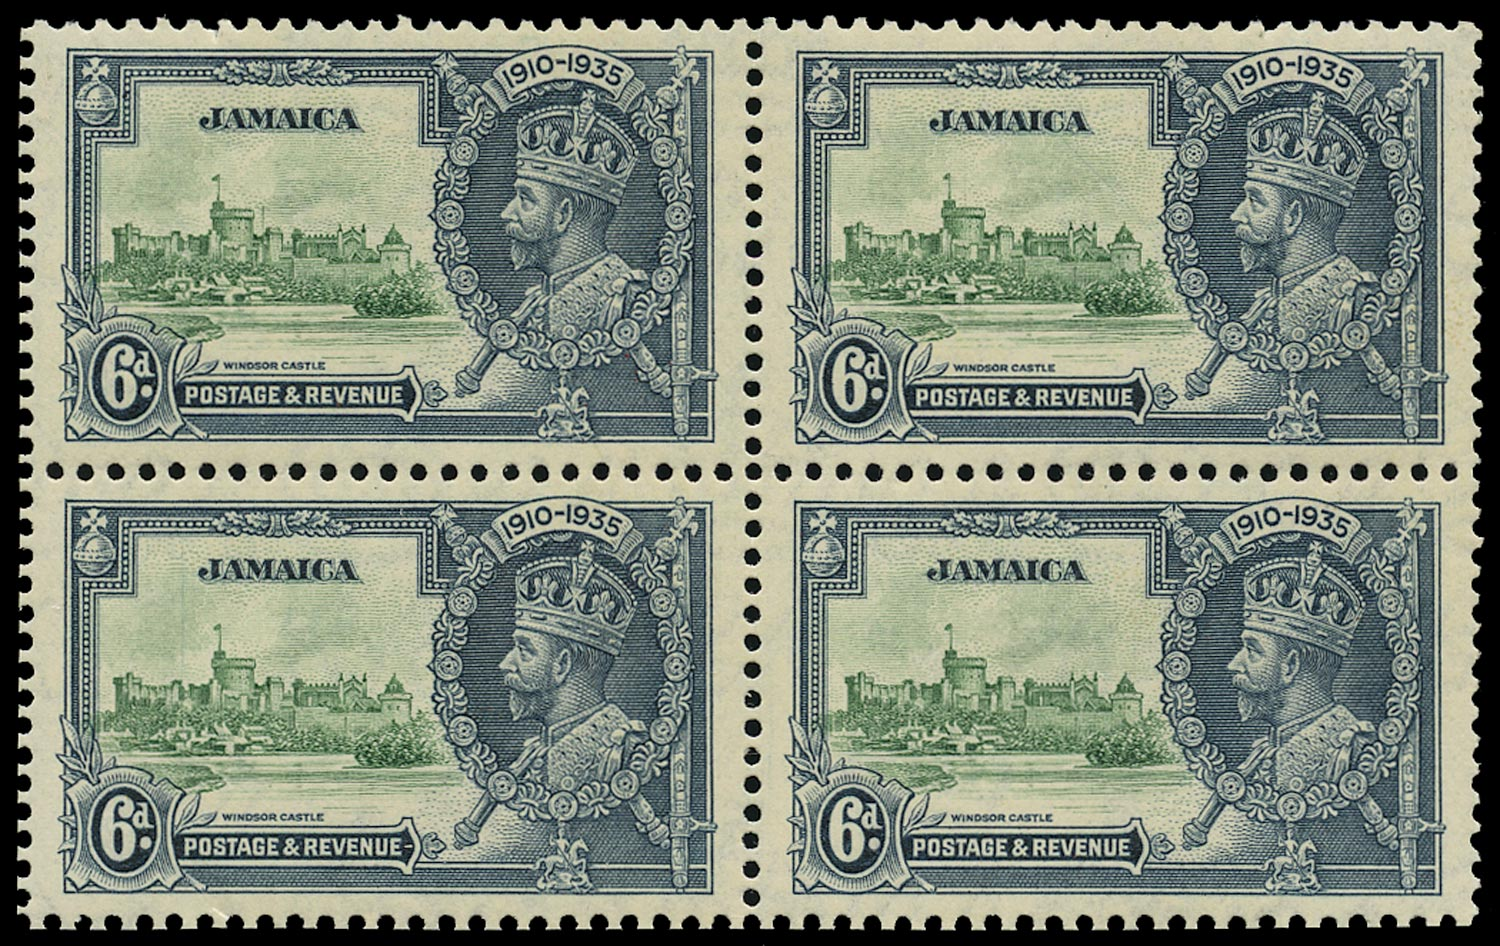 JAMAICA 1935  SG116a Mint Silver Jubilee 6d green and indigo variety Extra flagstaff